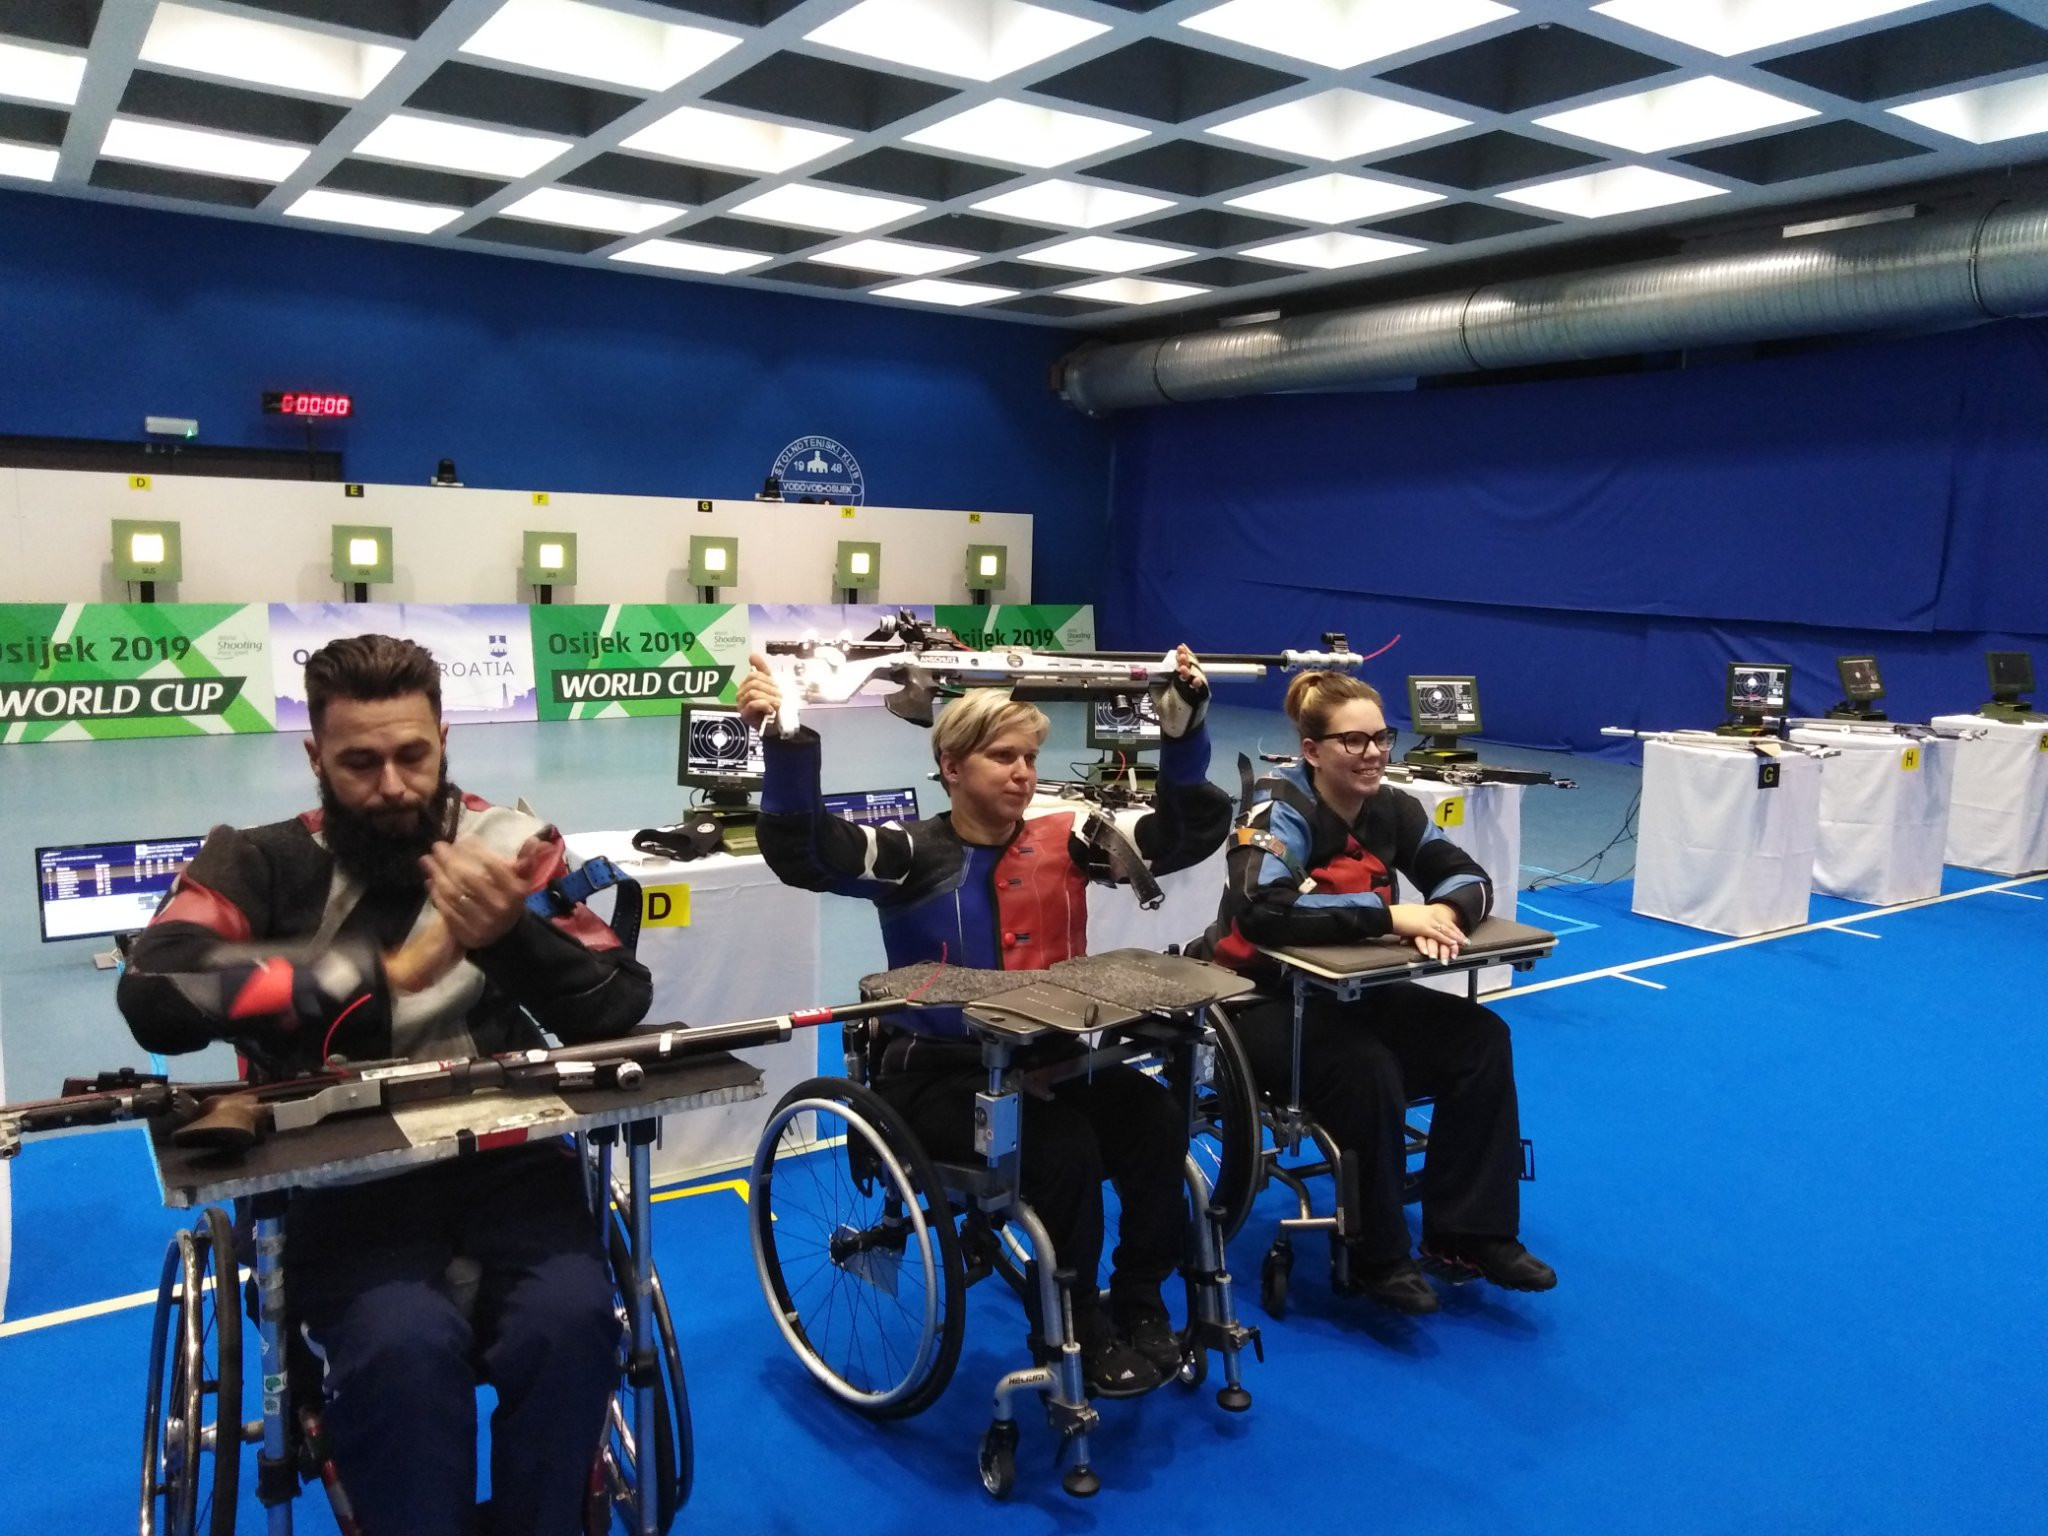 Vadovičová strikes gold at World Shooting Para Sport World Cup